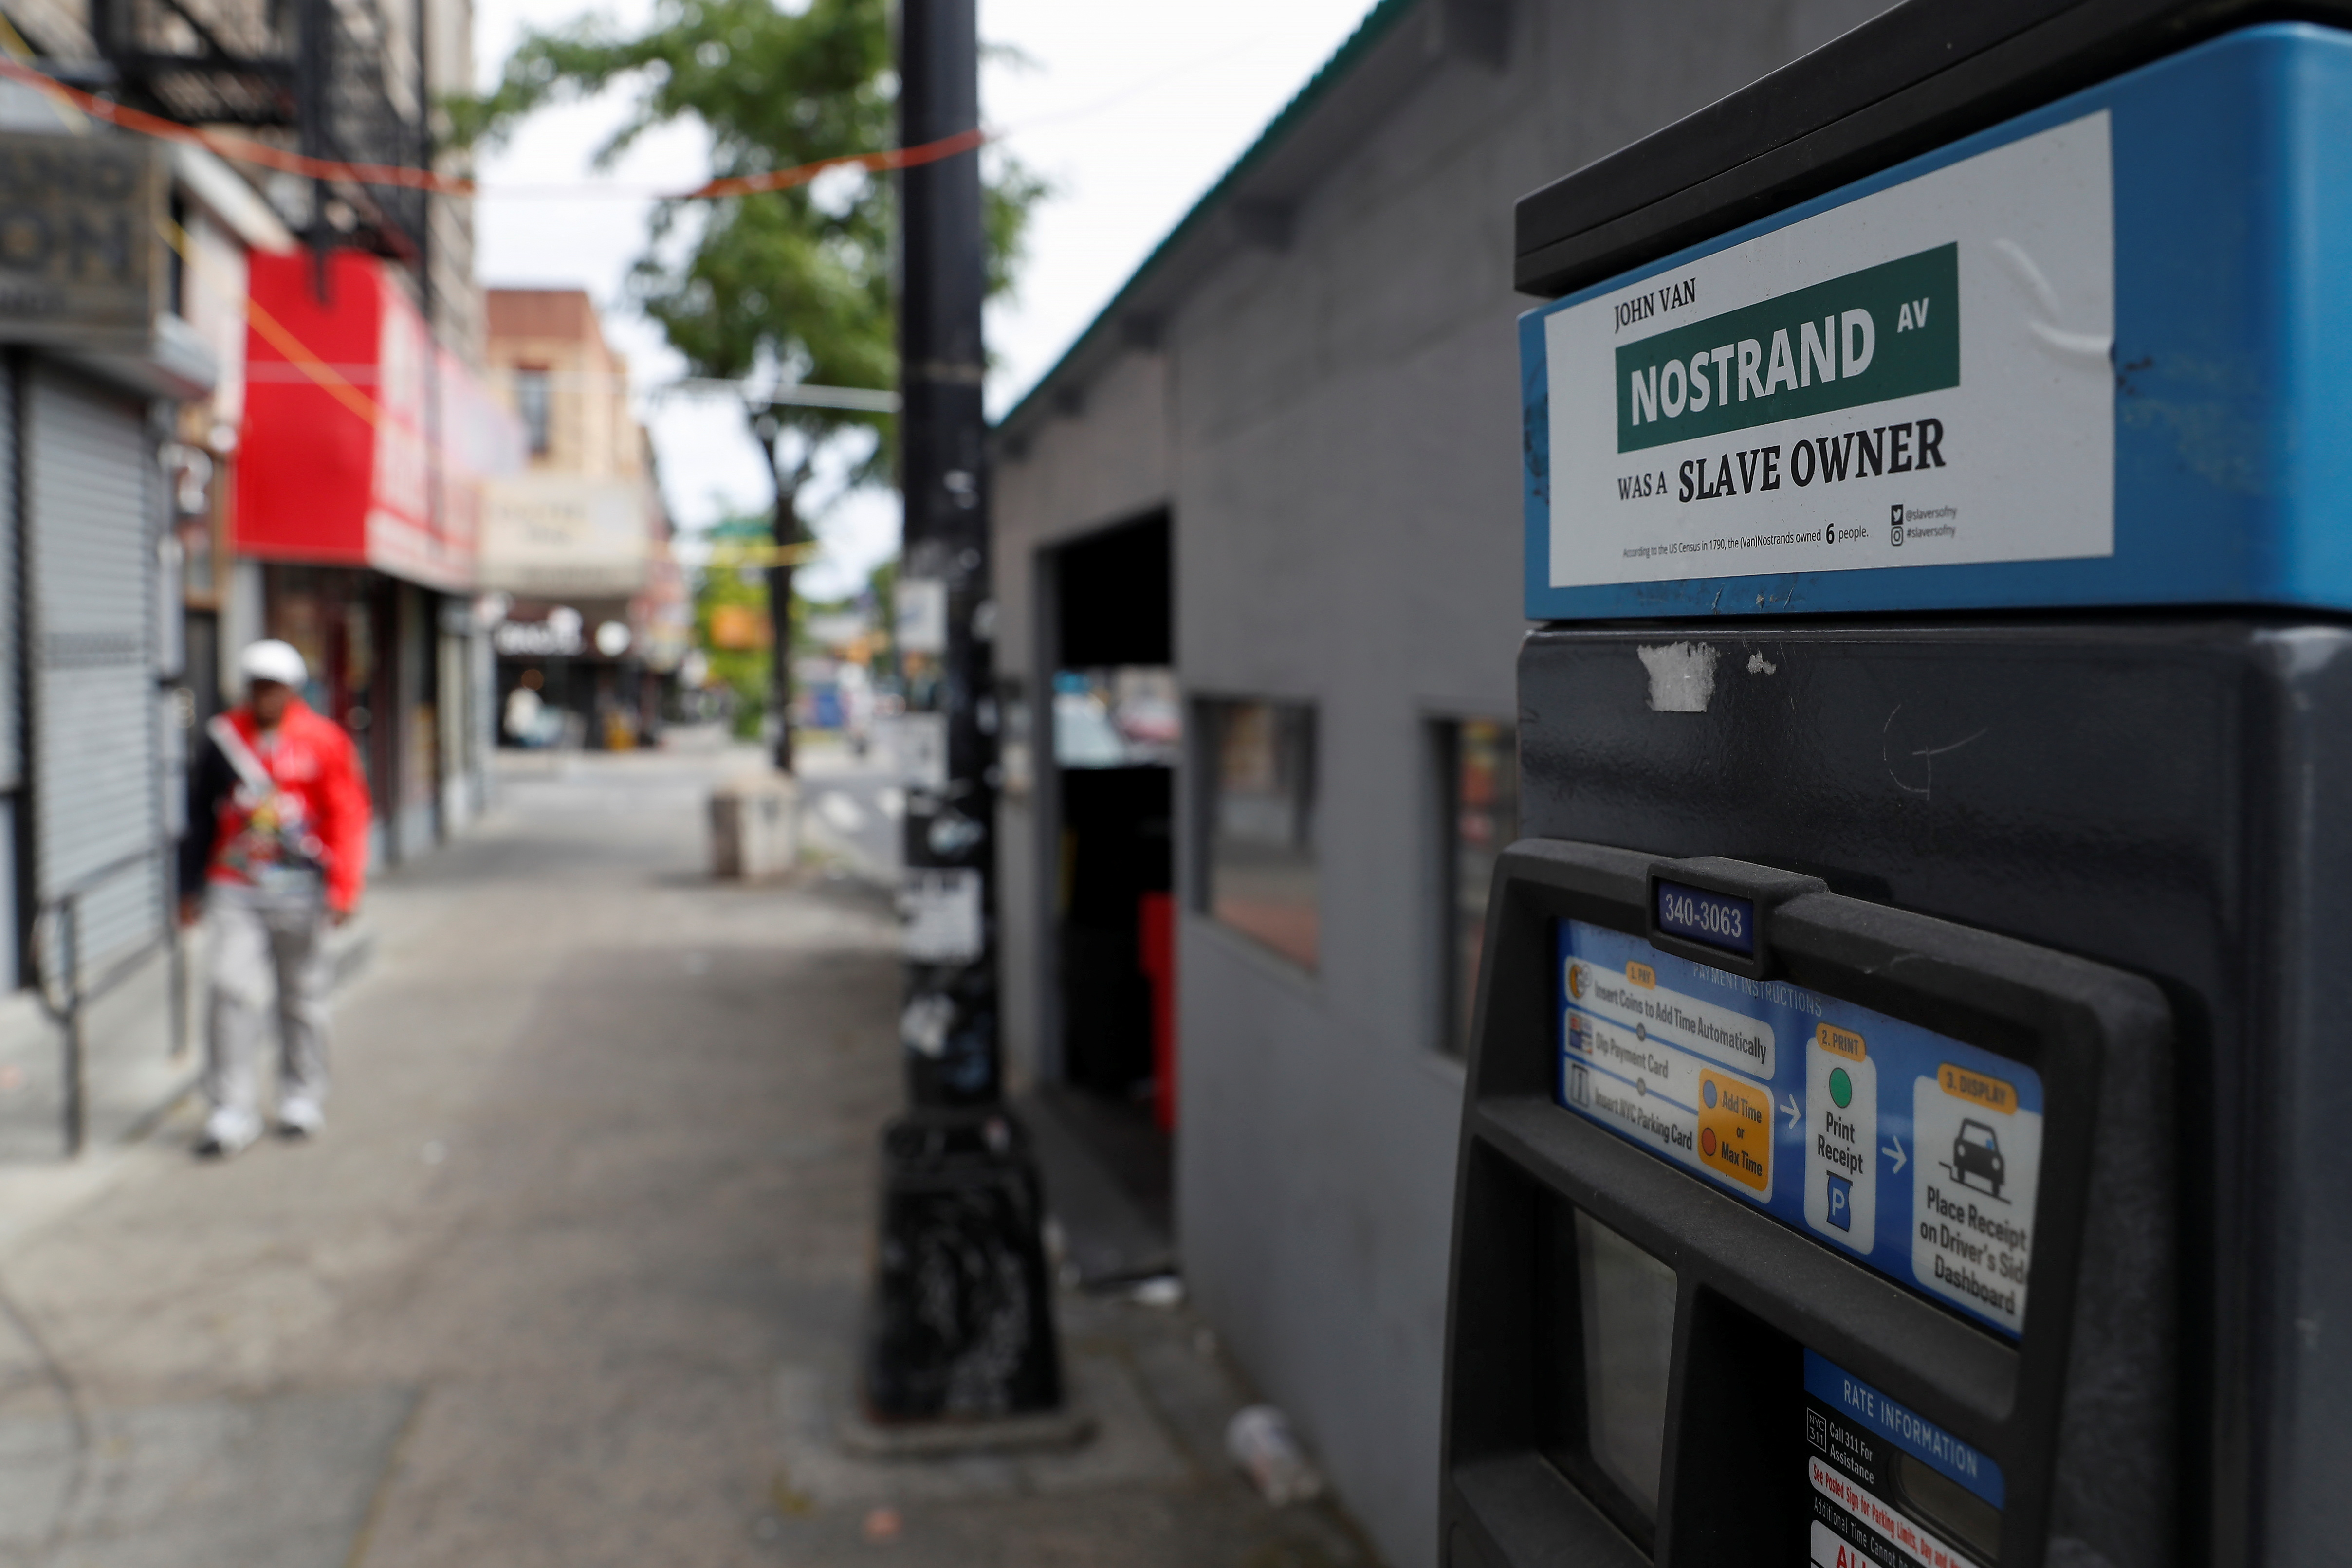 A 'Slavers of New York' campaign sticker is posted on a parking pay station in the Bedford-Stuyvesant section of the Brooklyn borough of New York City, U.S., May 24, 2021. Picture taken May 24, 2021. REUTERS/Shannon Stapleton